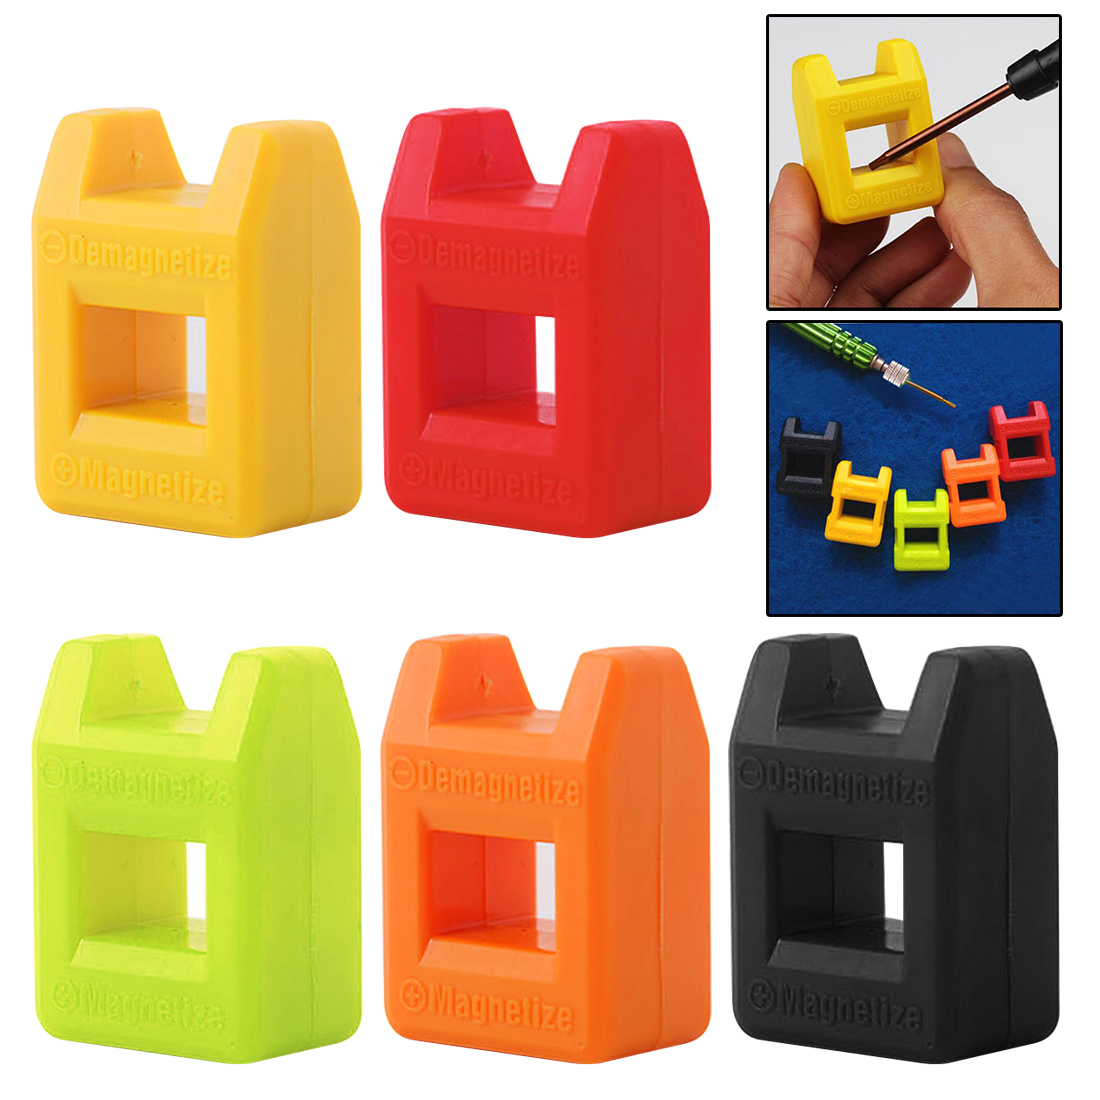 2018 Magnetizer Demagnetizer 2 In 1 Tool Screwdriver Magnetic High Quality Colour Send Random Mini - Fast